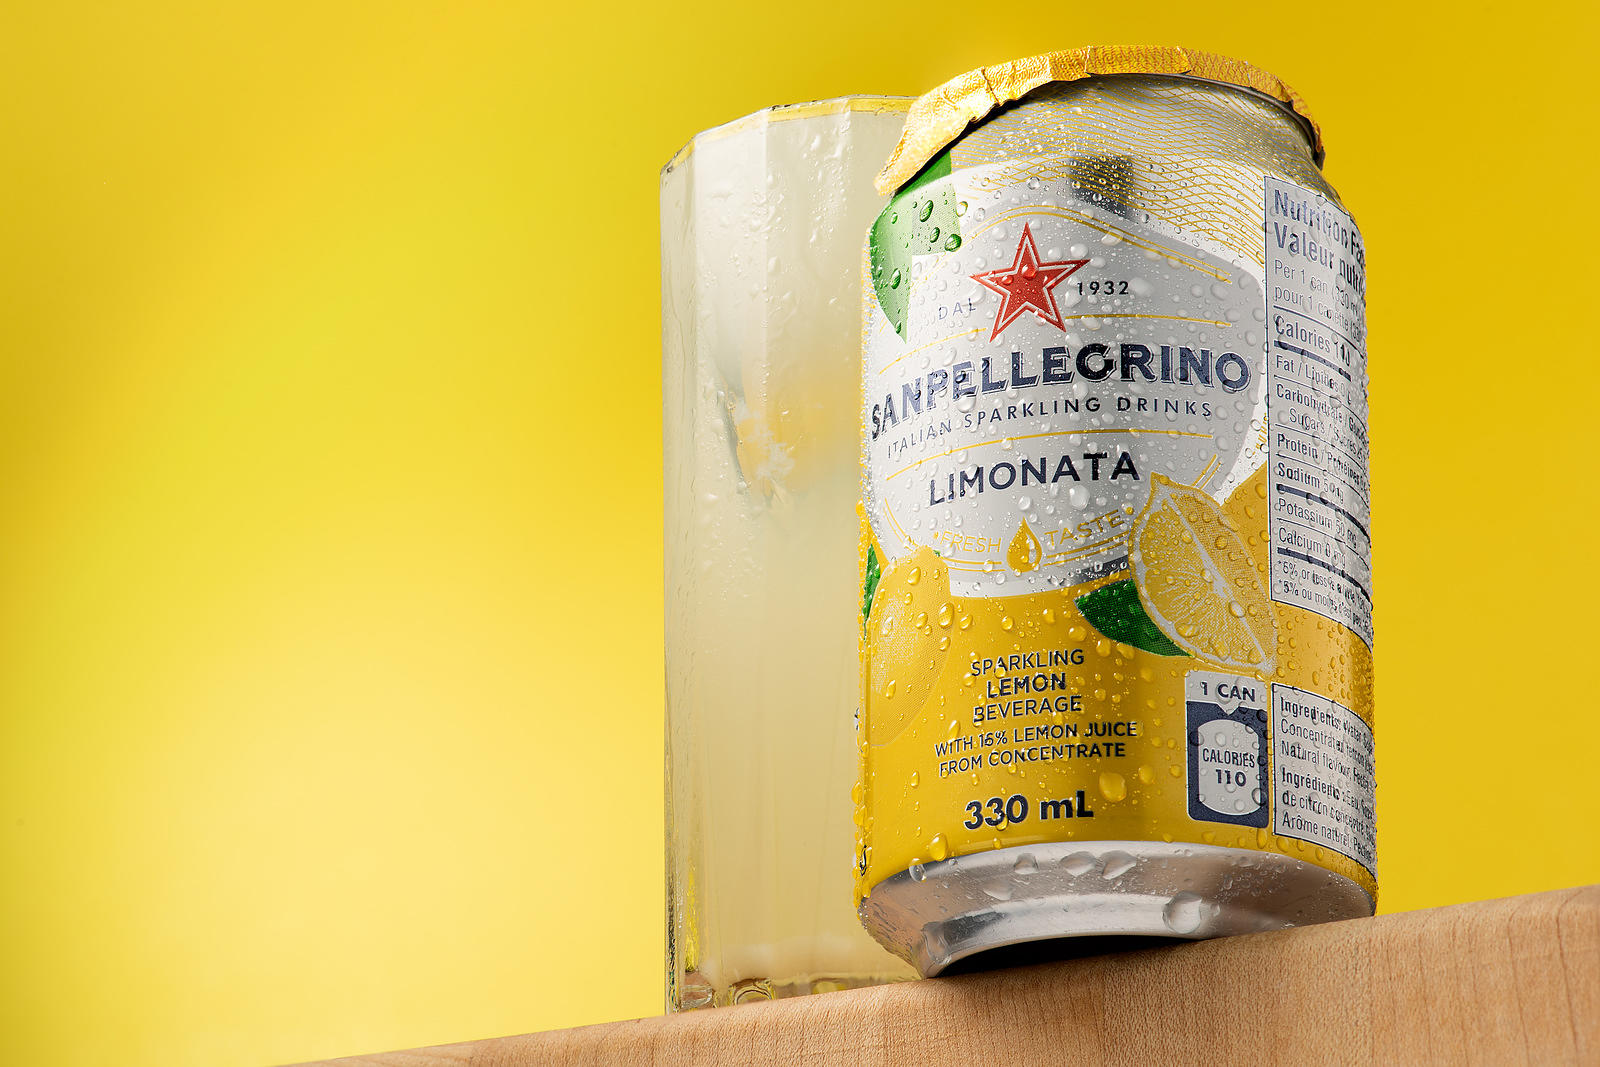 Montreal food photographer, south shore still life & beverage  photography, sanpellegrino lemon